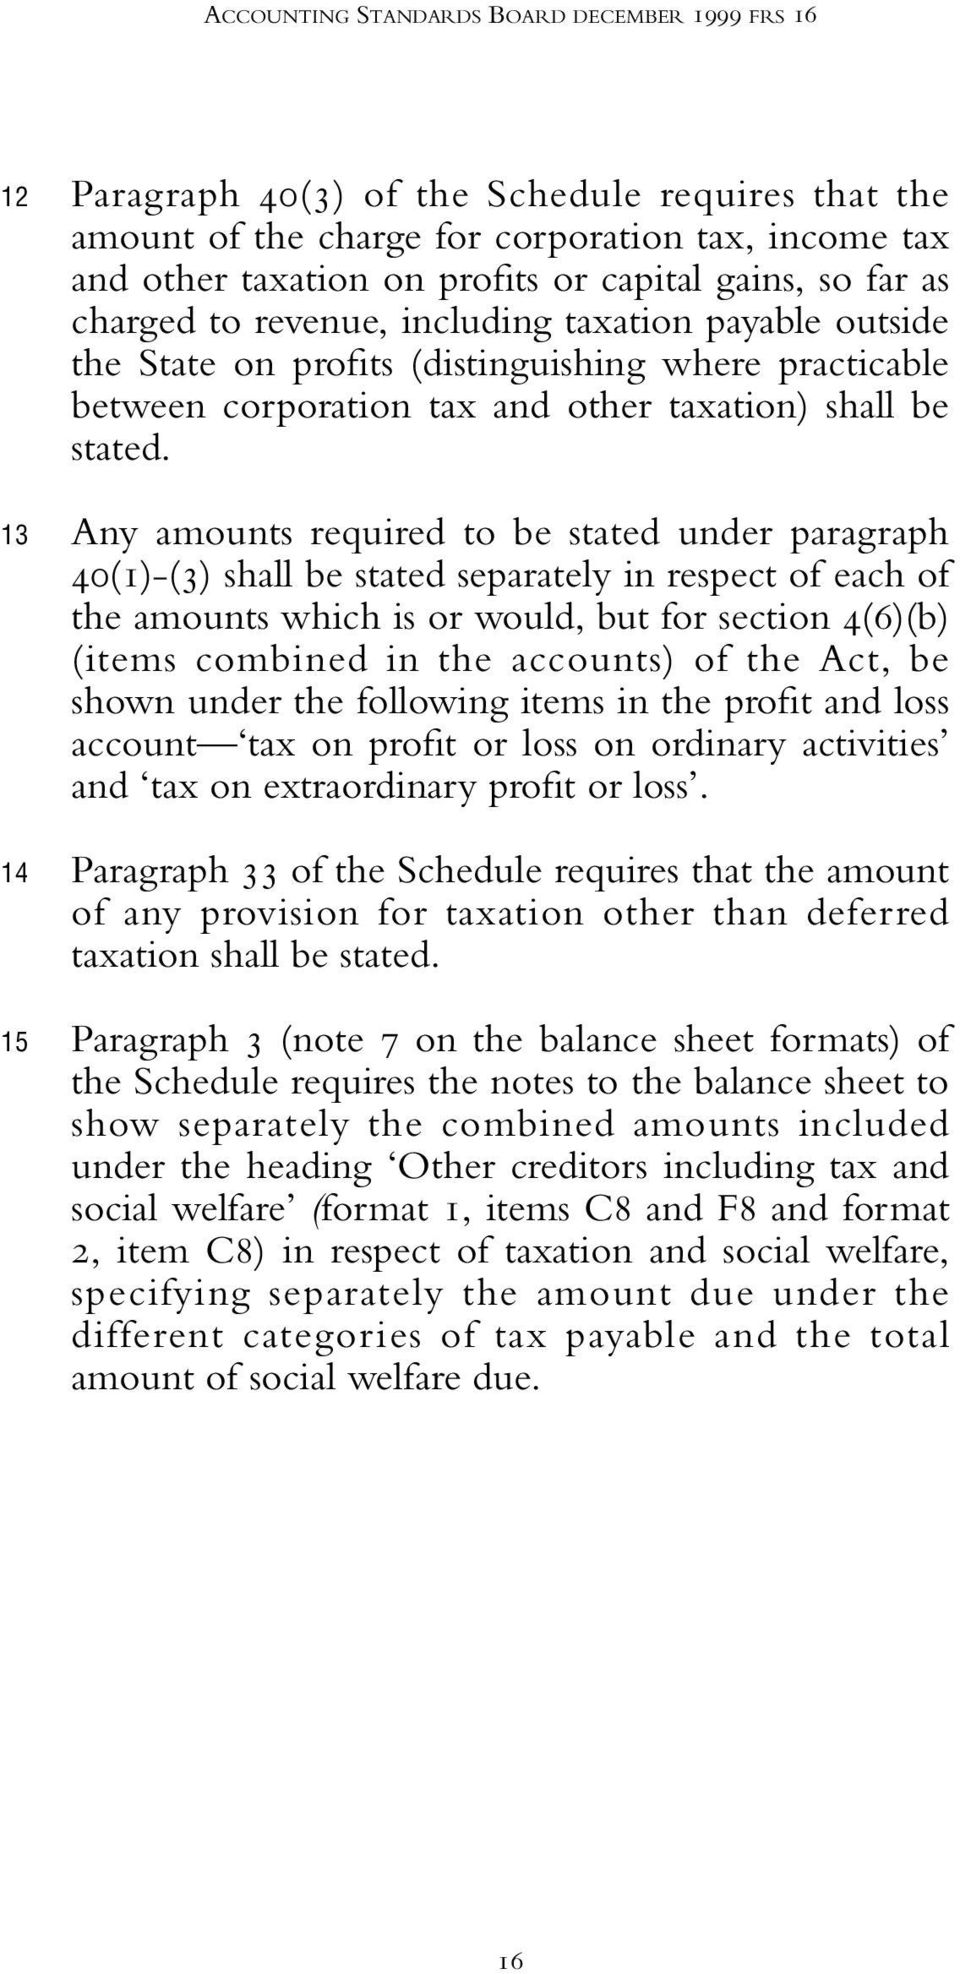 Any amounts required to be stated under paragraph 40(1)-(3) shall be stated separately in respect of each of the amounts which is or would, but for section 4(6)(b) (items combined in the accounts) of